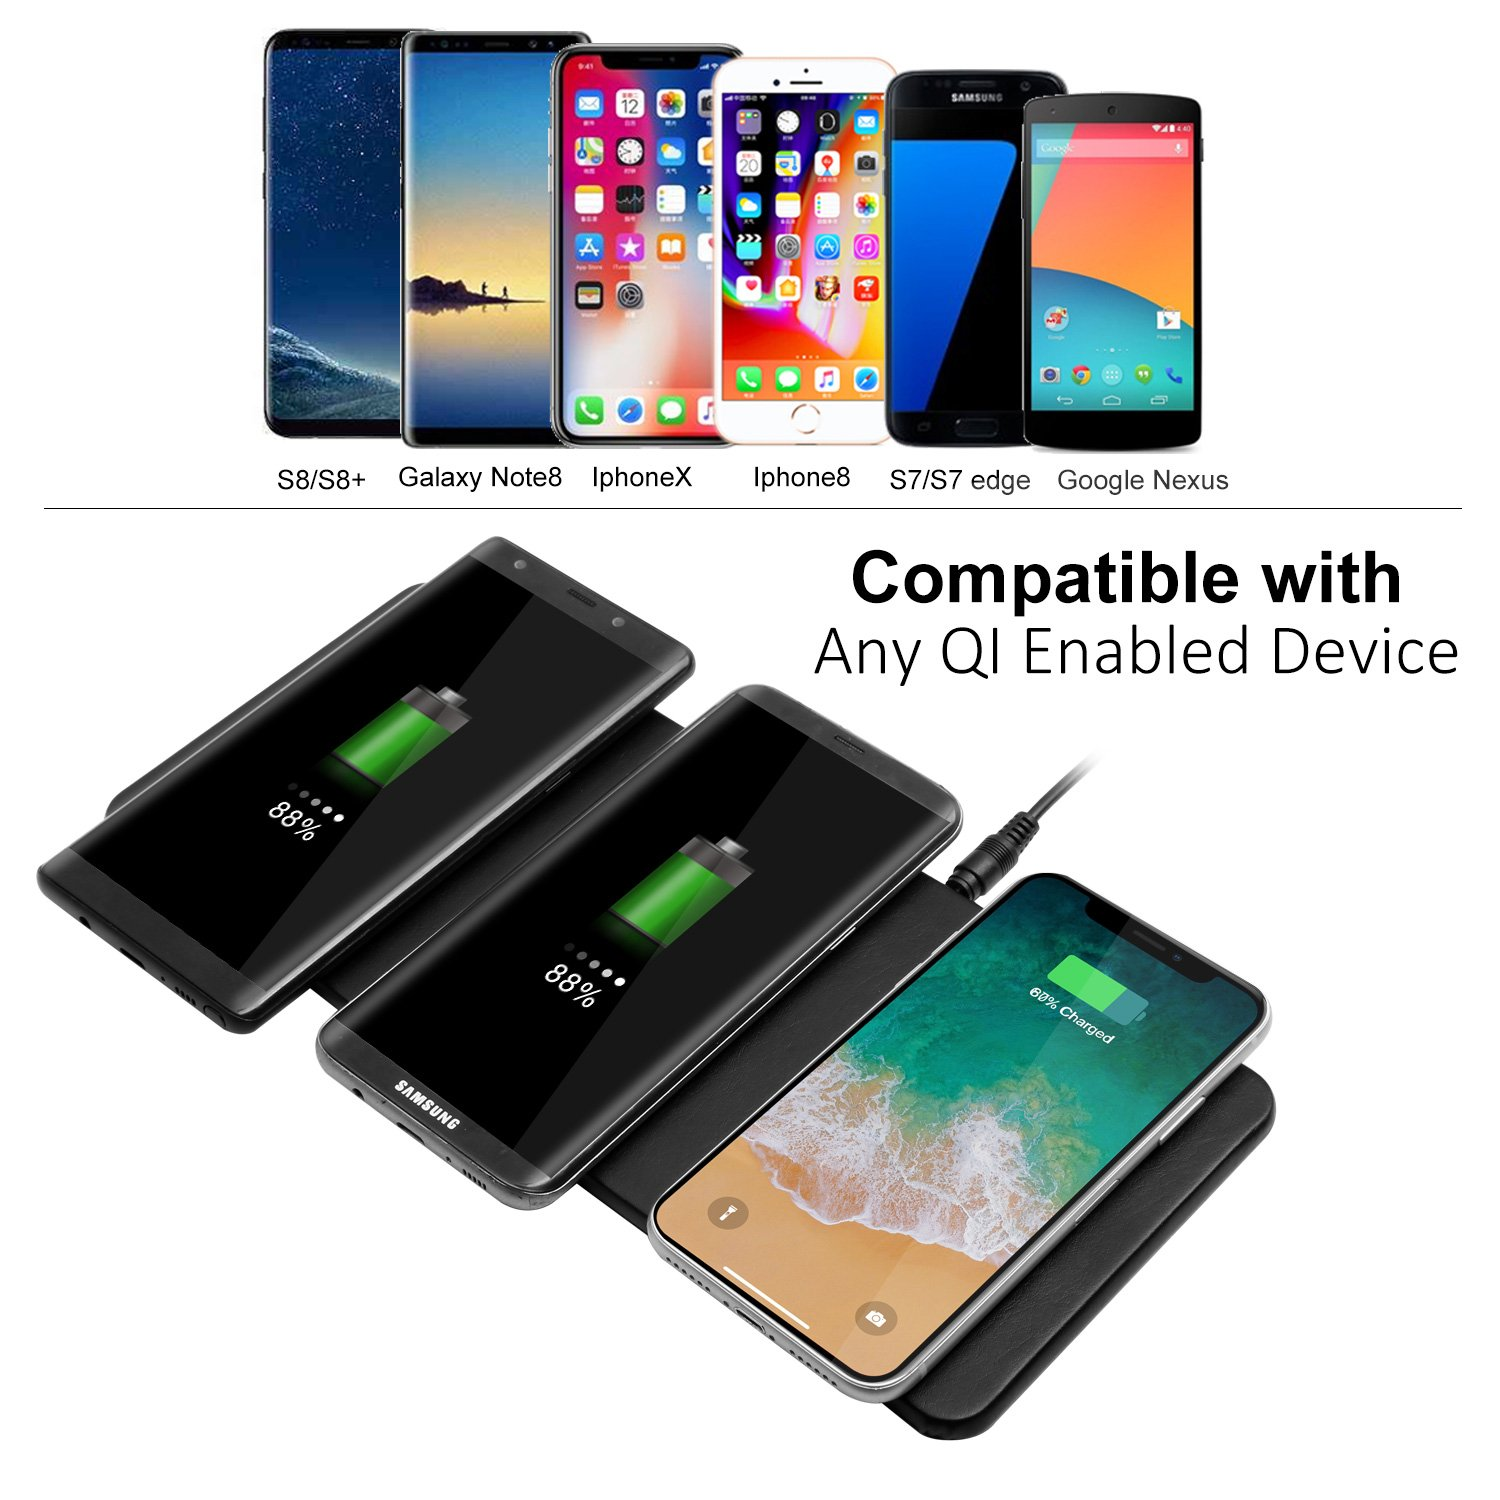 Qi Triple Wireless Charger Station,JE 3 Devices Multi Wireless Charger Pad,Desktop Charging Station for iPhone X, iPhone 8/8Plus, Samsung Galaxy S8+ S7/S7 Edge Note 8/5, Nexus 5/6/7& all QI-Enabled … by JE (Image #3)